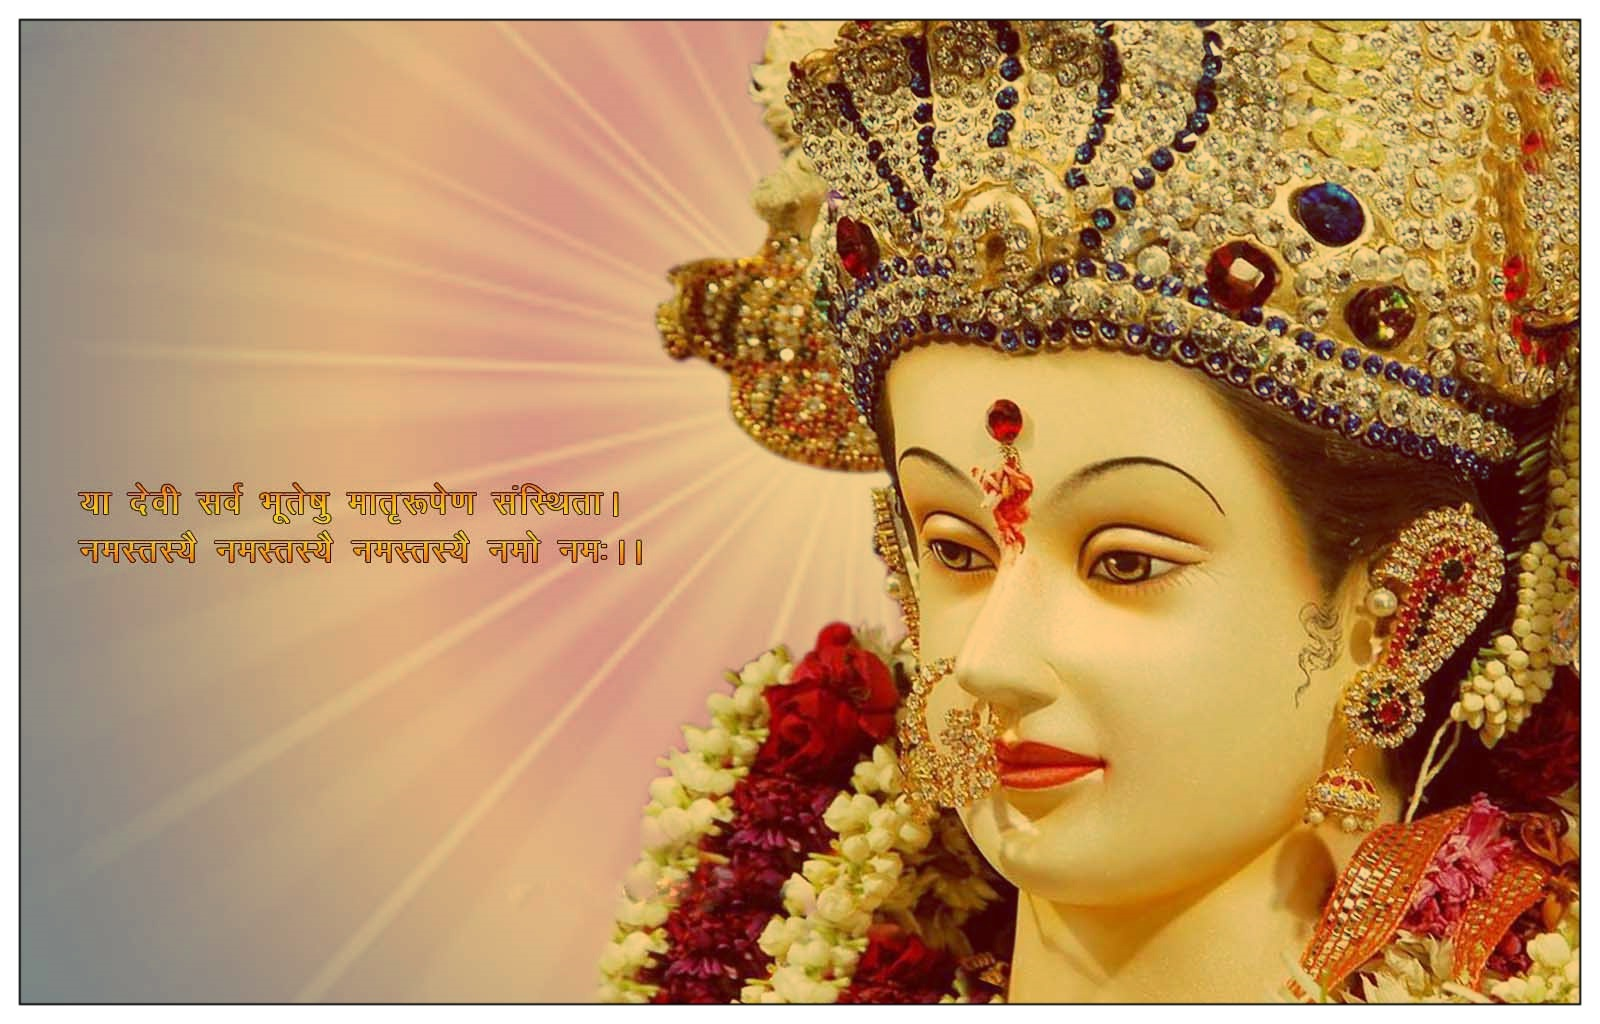 Navratri Special Collection of Maa Durga Wallpaper - Festival Chaska